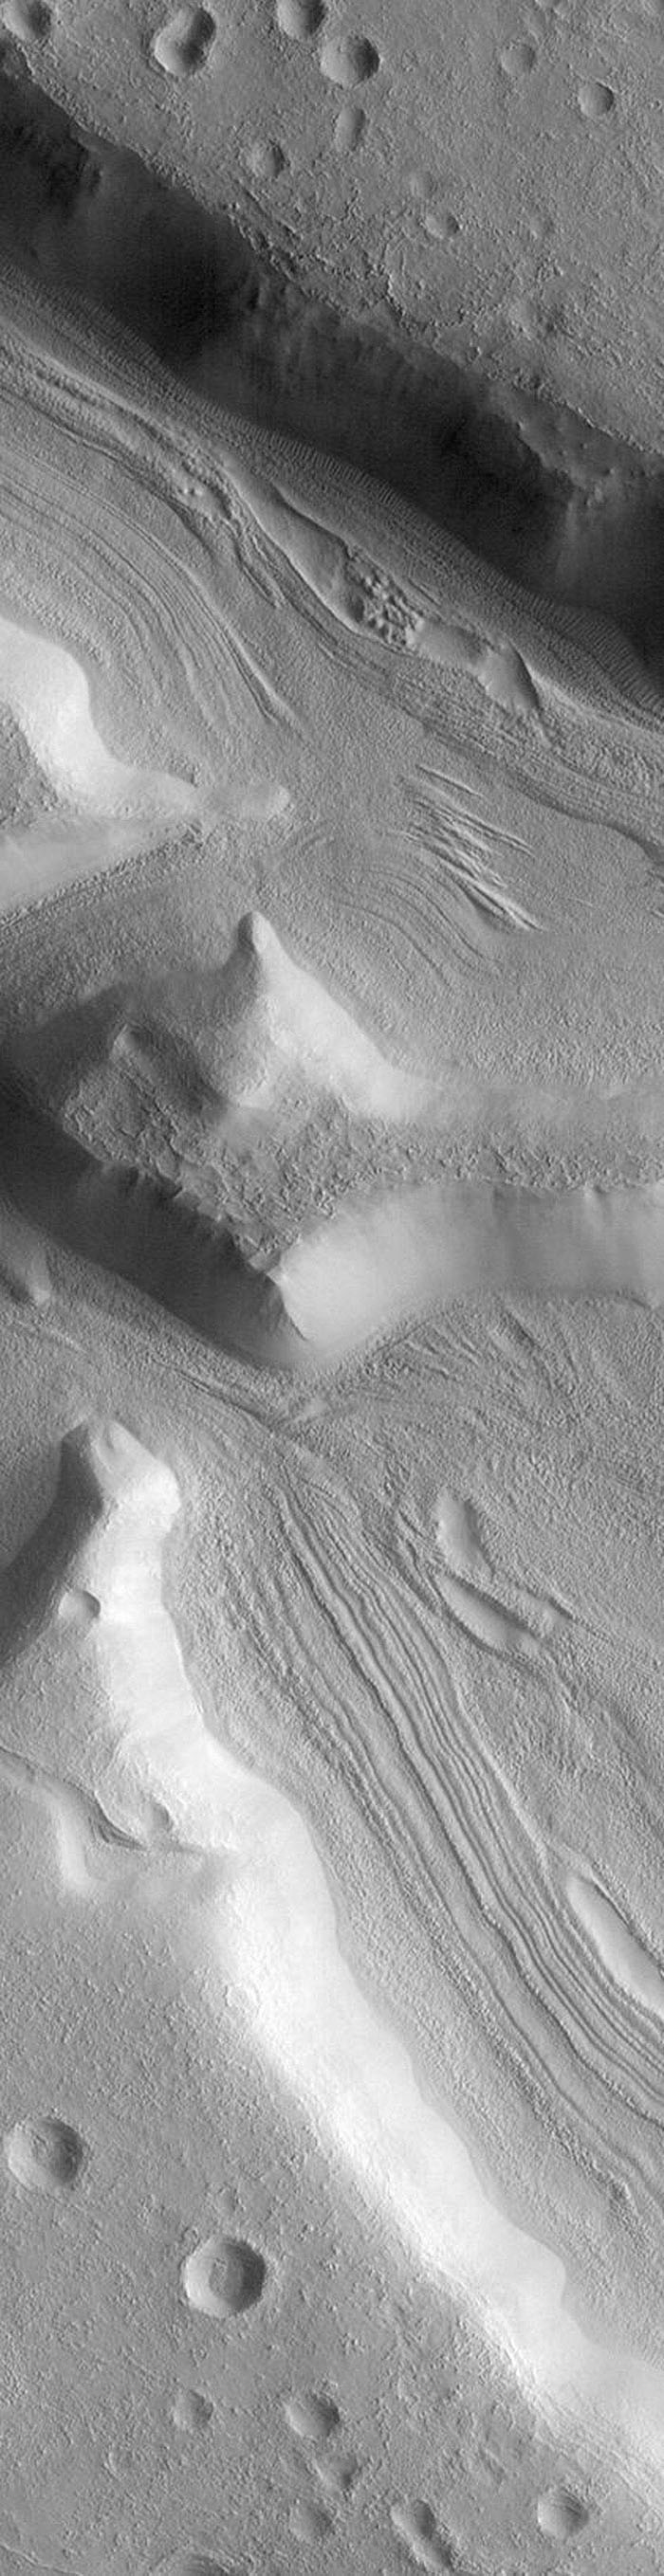 NASA's Mars Global Surveyor took a variety of pictures of the martian fretted terrain, particularly during the months of April through September 1998. This lineated valley shows fill on the floors of some straight, narrow canyons named the Coloe Fossae.